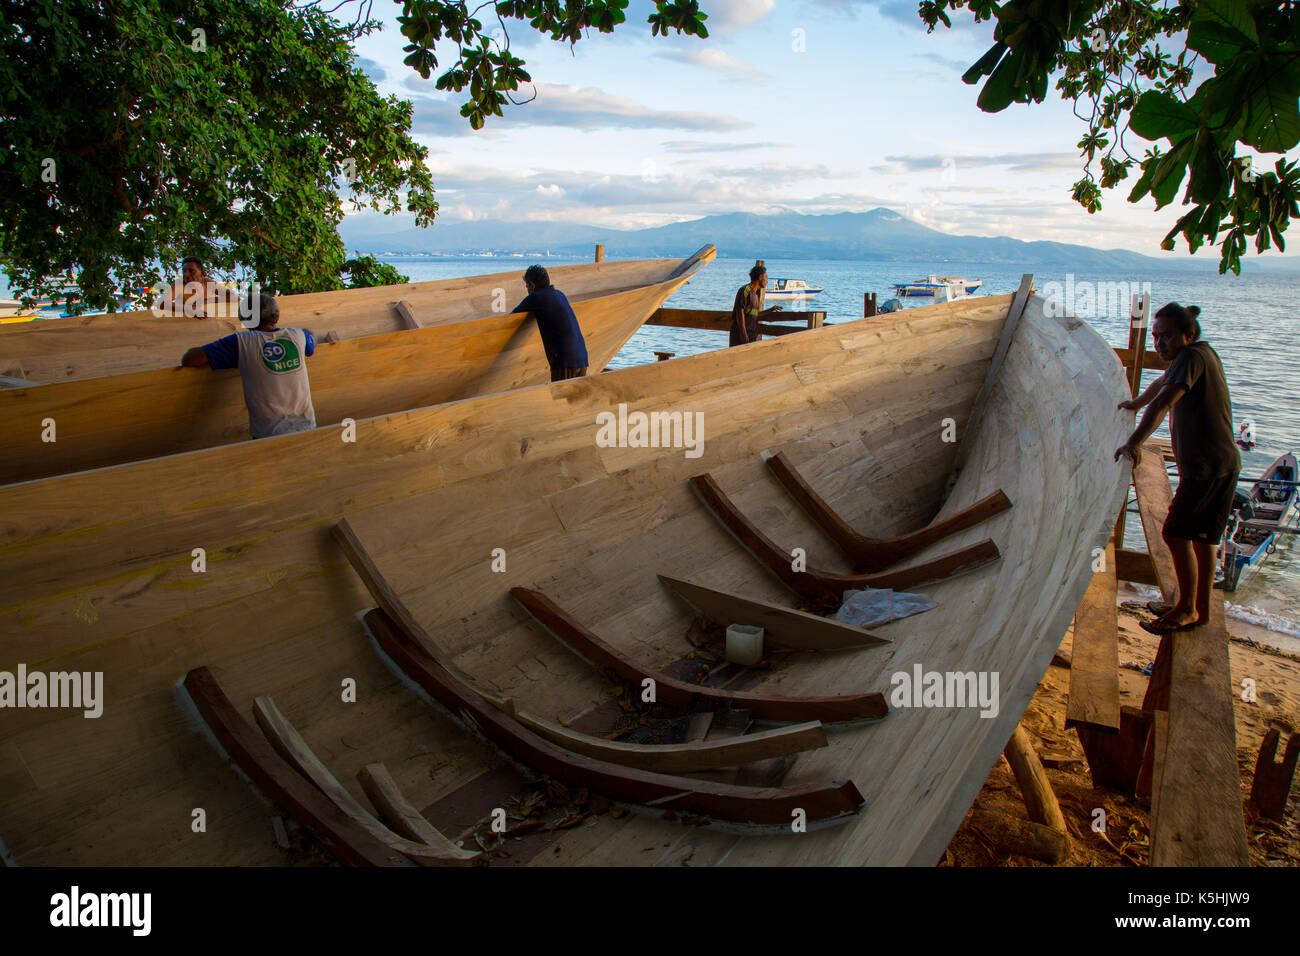 Boat builders observe their work on the beach at Bunaken Island, Sulawesi - Stock Image